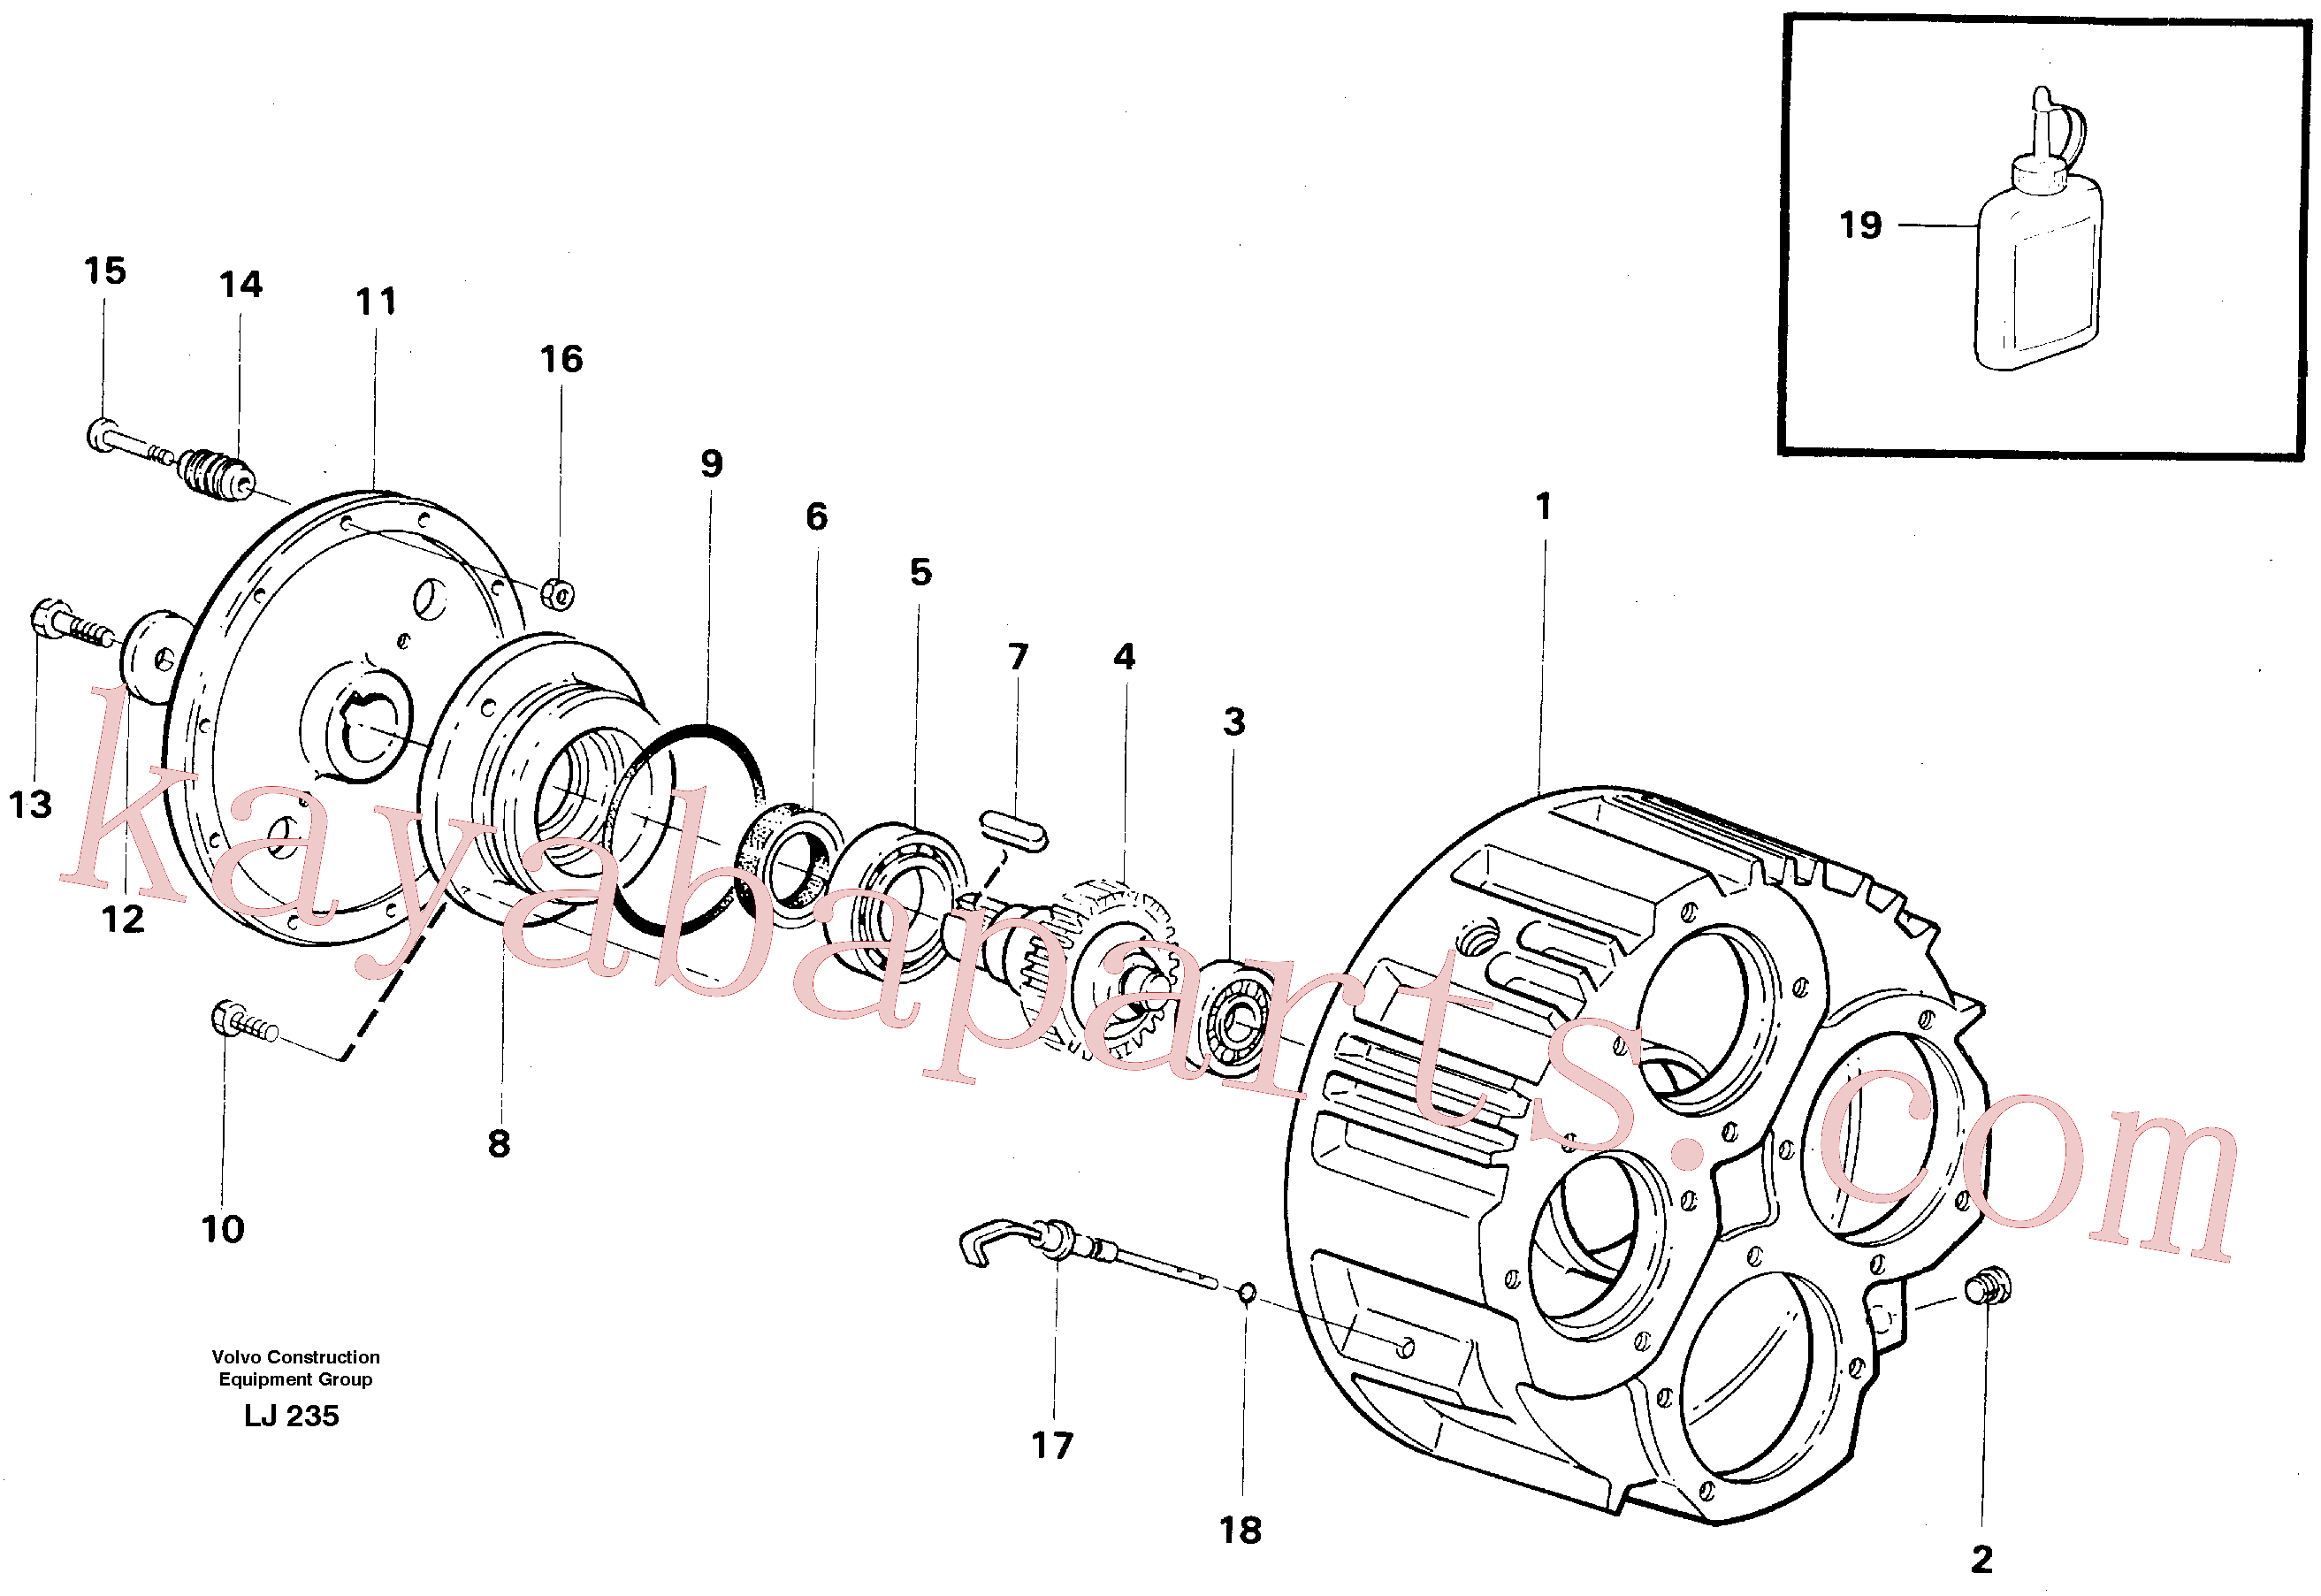 VOE14237117 for Volvo Pump gear box(LJ235 assembly)